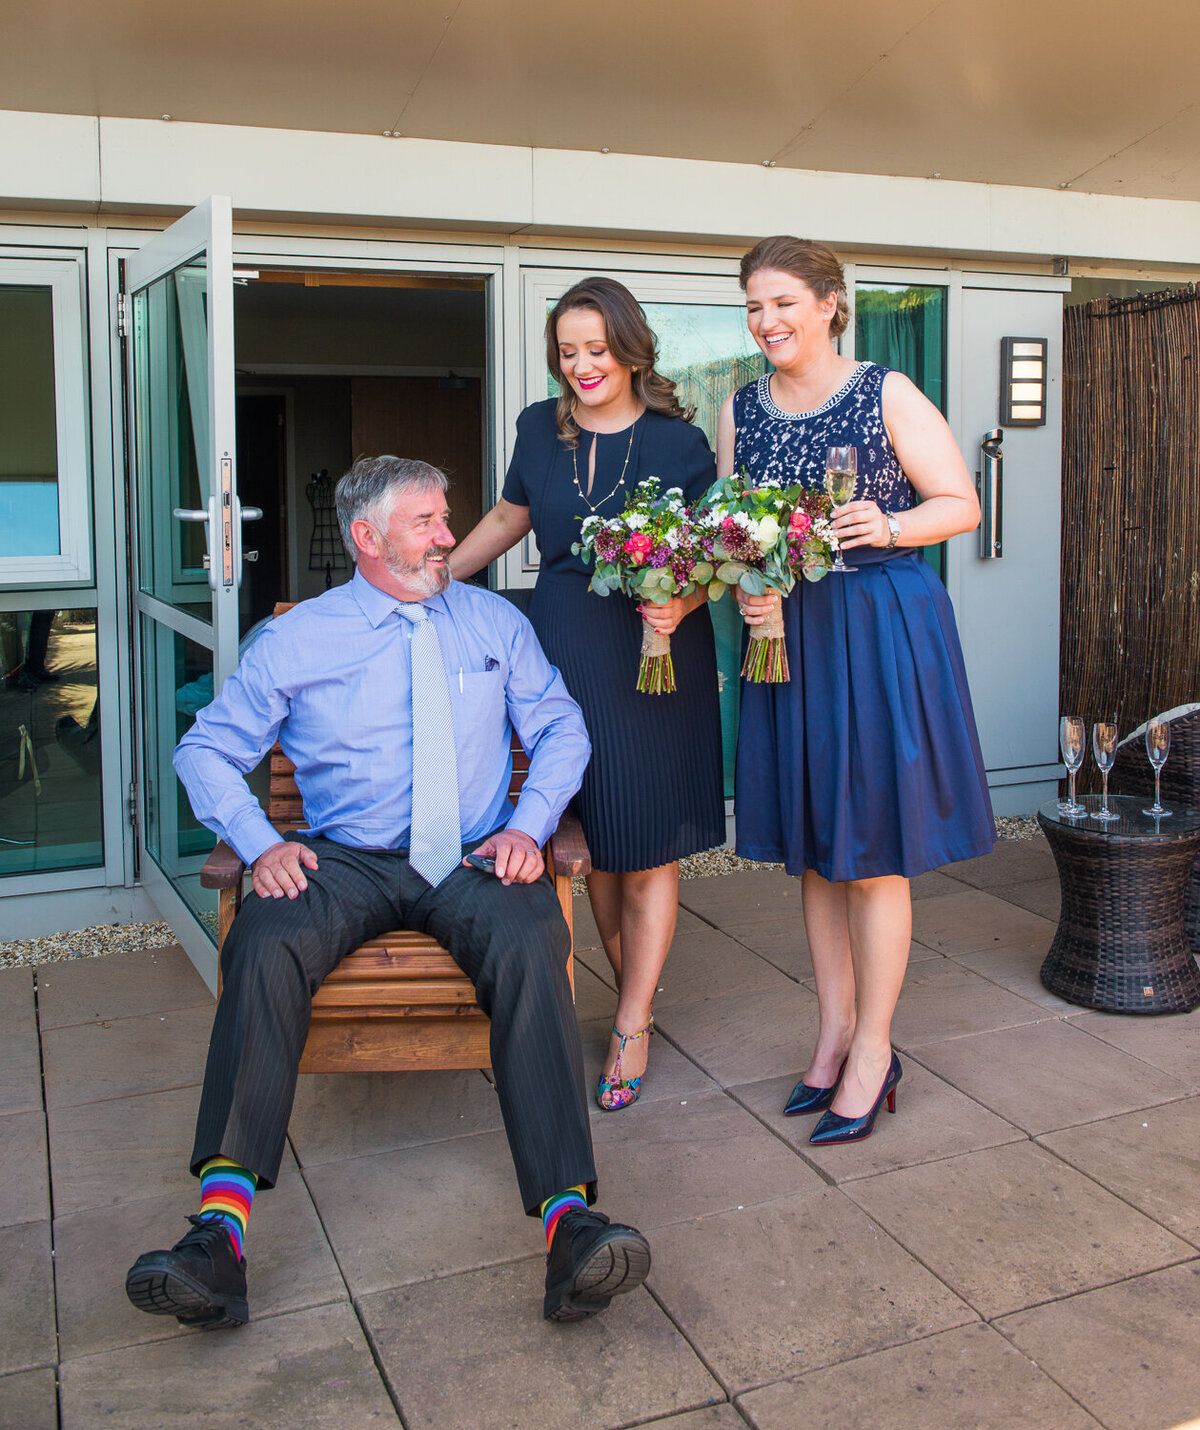 Two brides looking at dad's rainbow socks